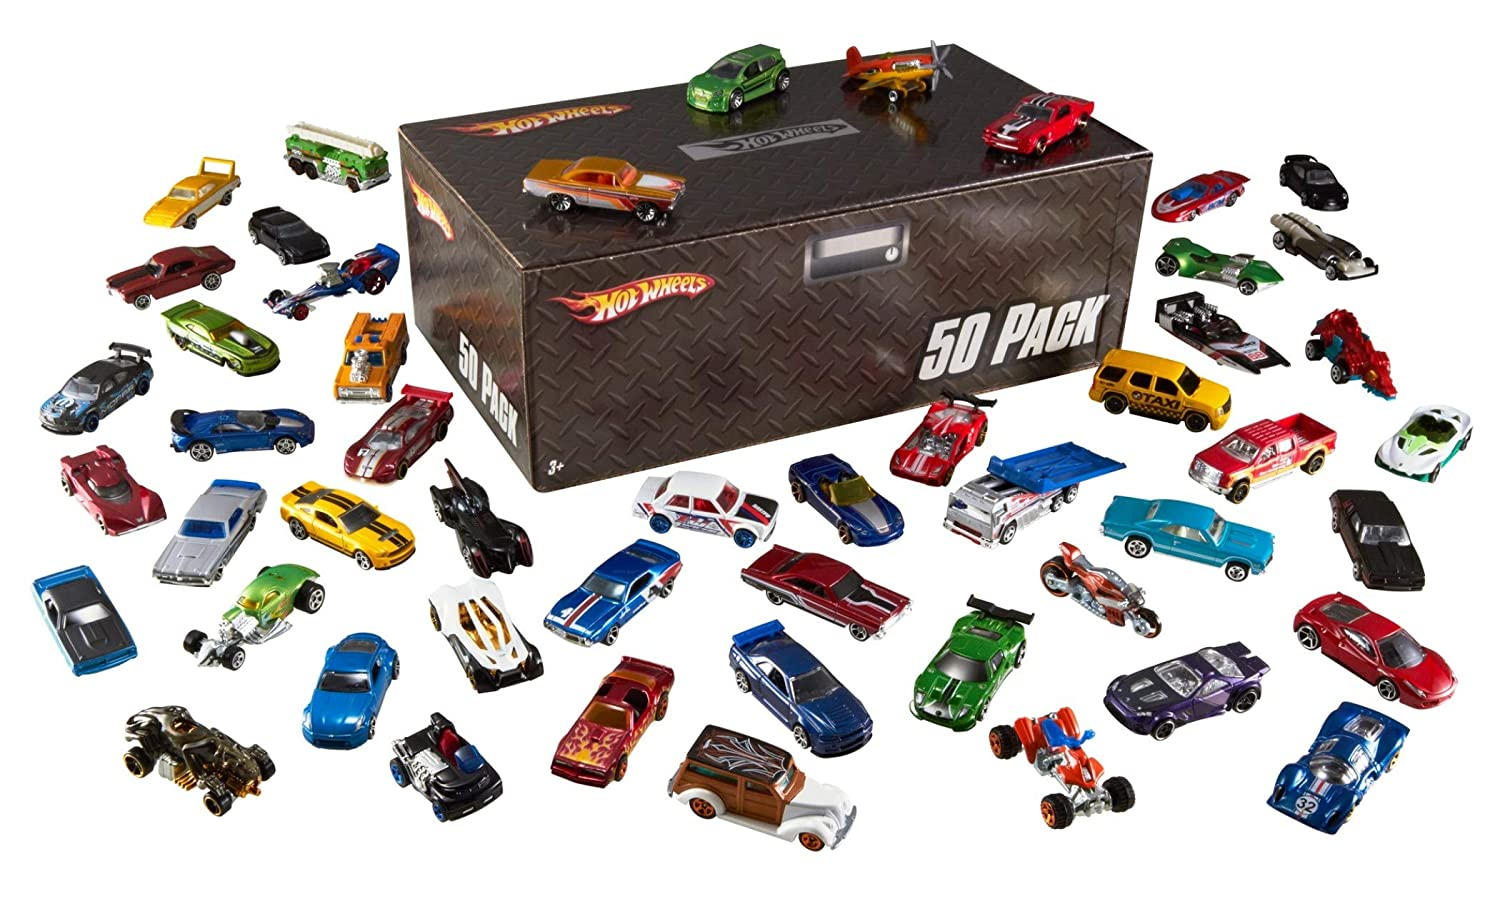 Hot Wheels Basic Car 50-Pack (Packaging May Vary) Mattel V6697